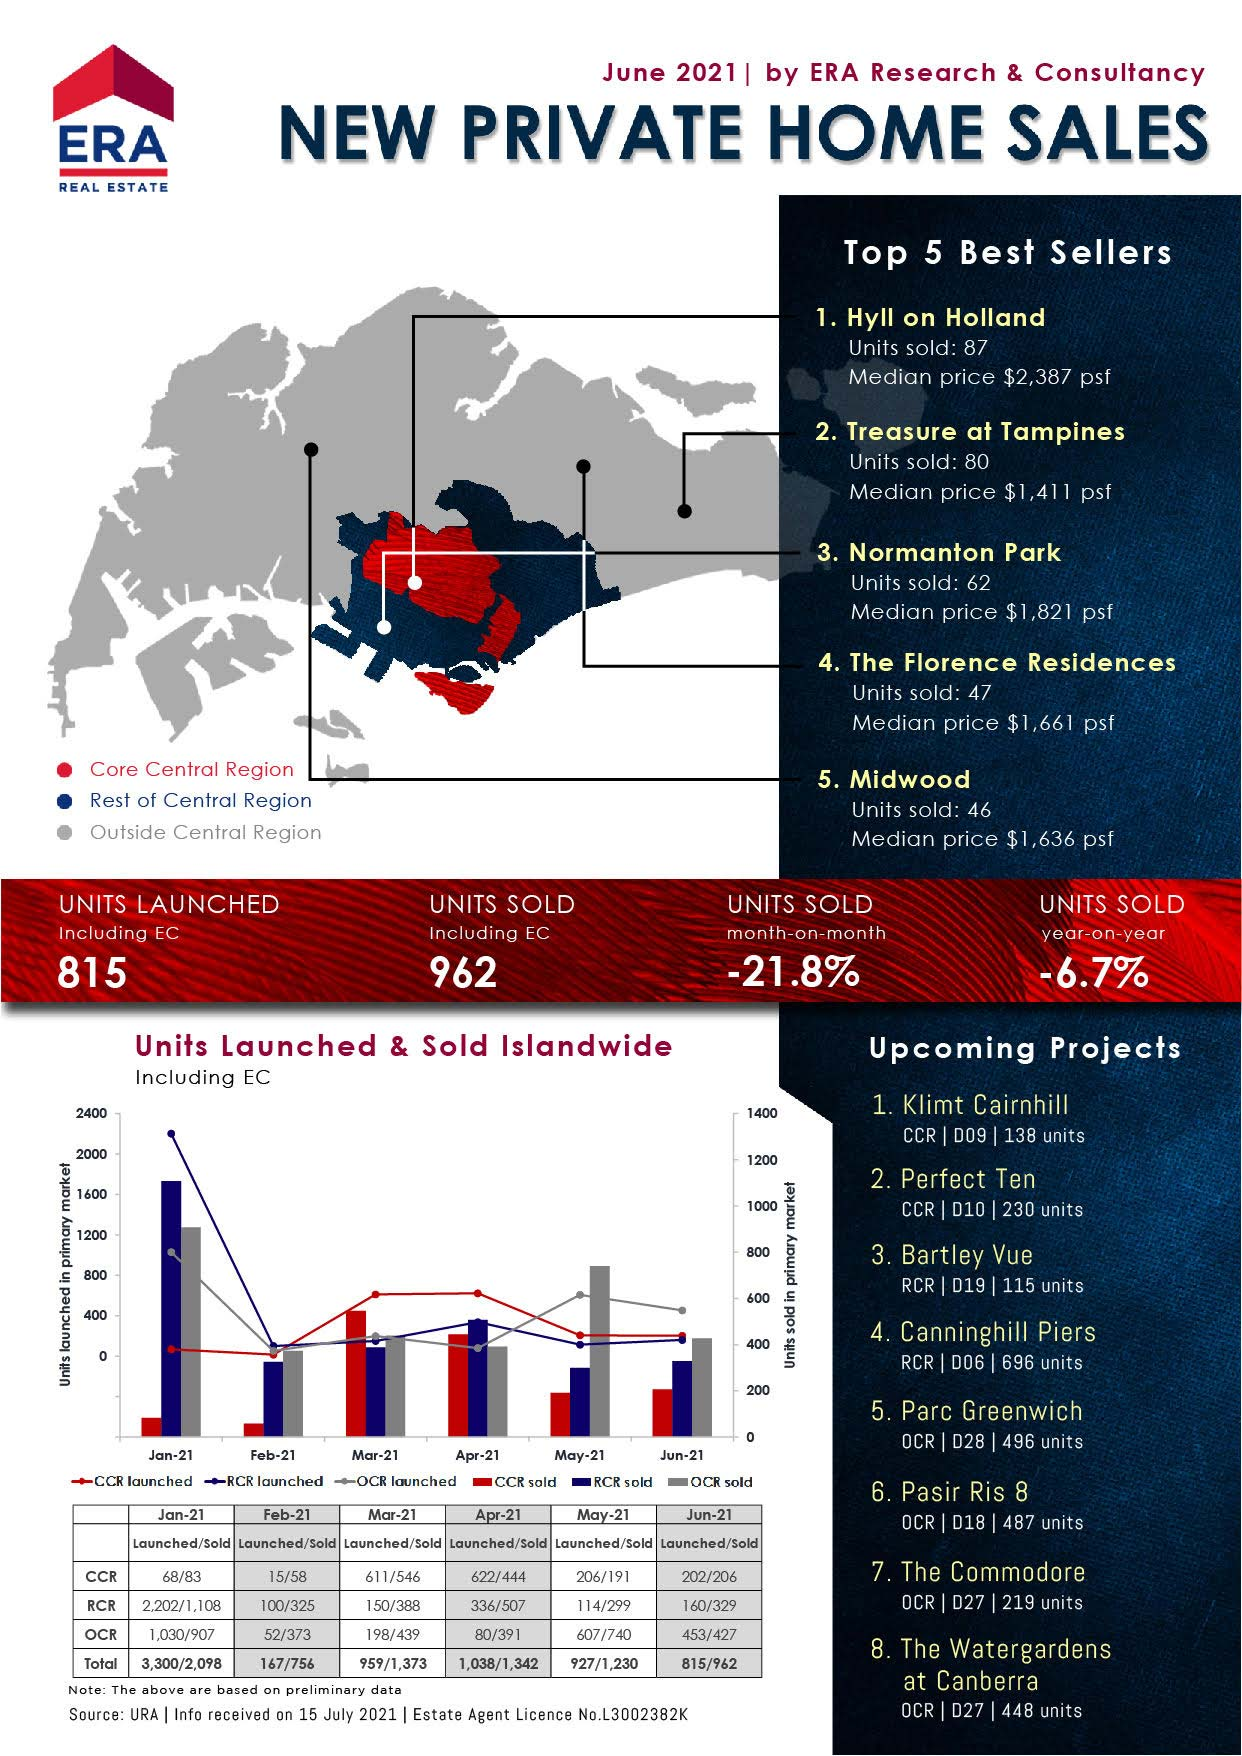 June 2021 Private Home Sales - Singapore Real Estate News & Updates